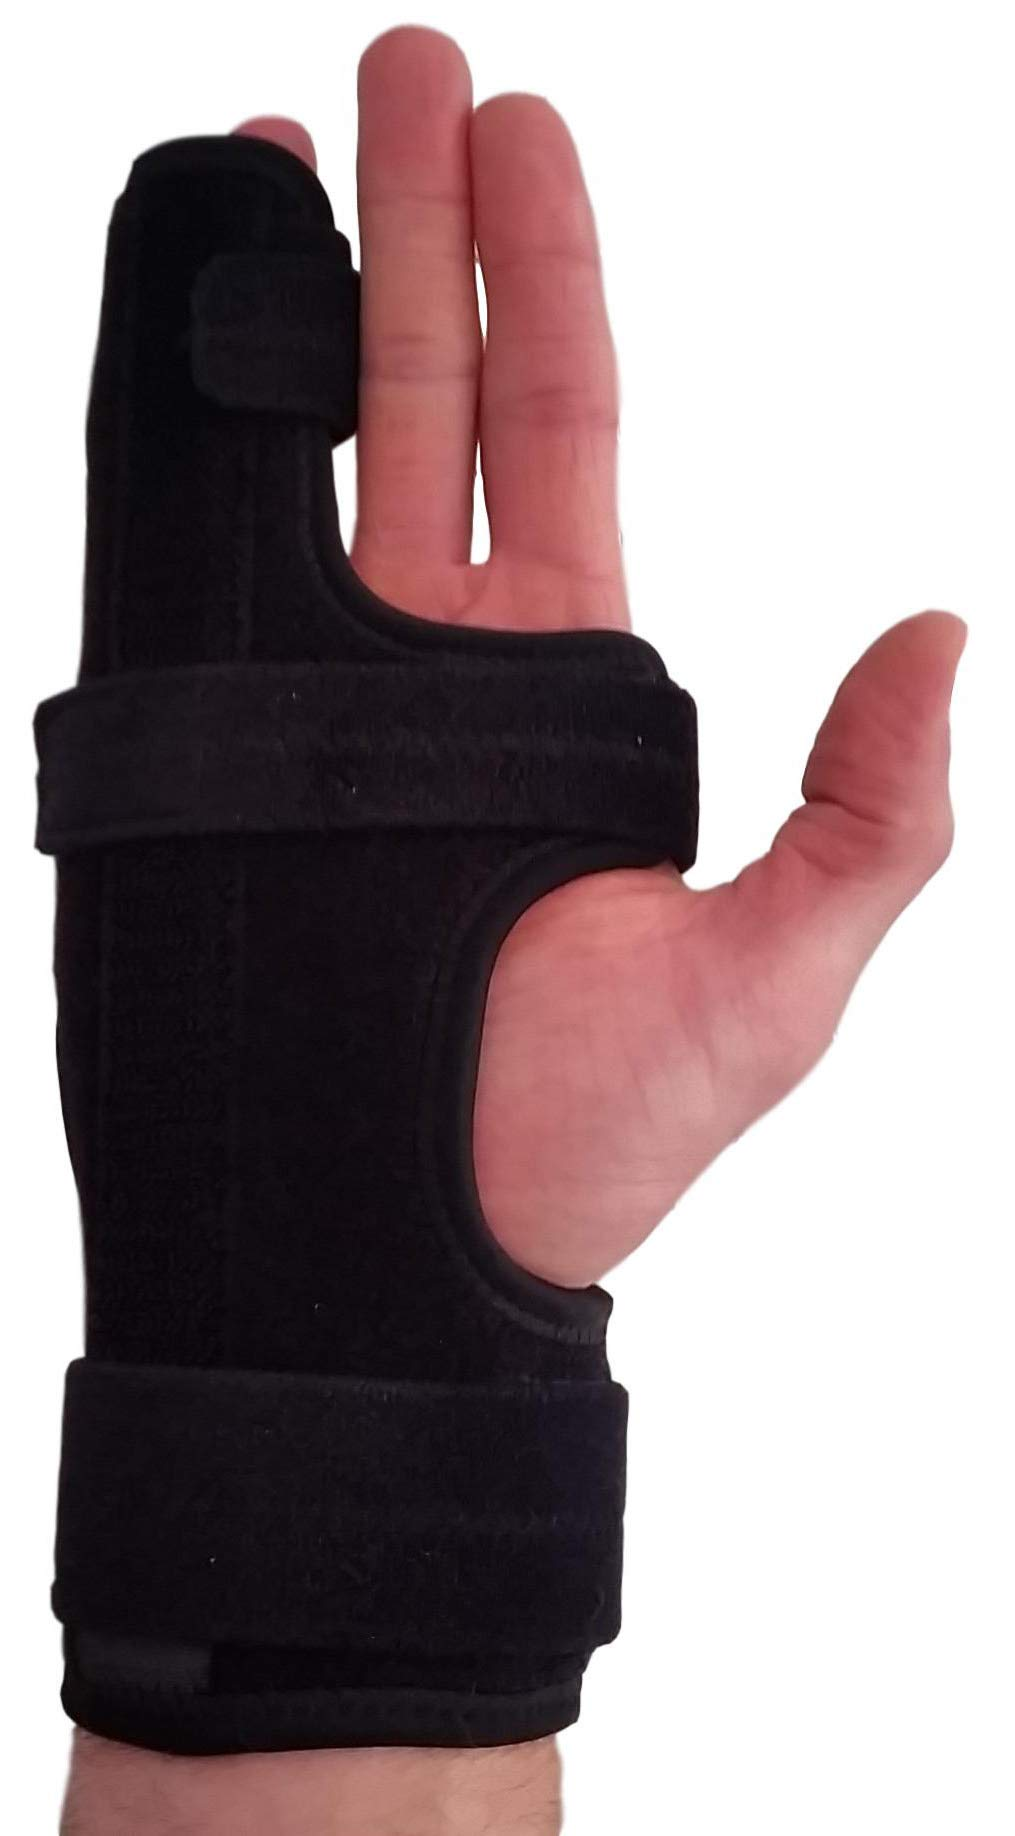 Metacarpal Finger Splint Hand Brace - Hand Brace & Metacarpal Support for Broken Fingers, Wrist & Hand Injuries or Little Finger Fracture (Right - Large) by ARMSTRONG AMERIKA